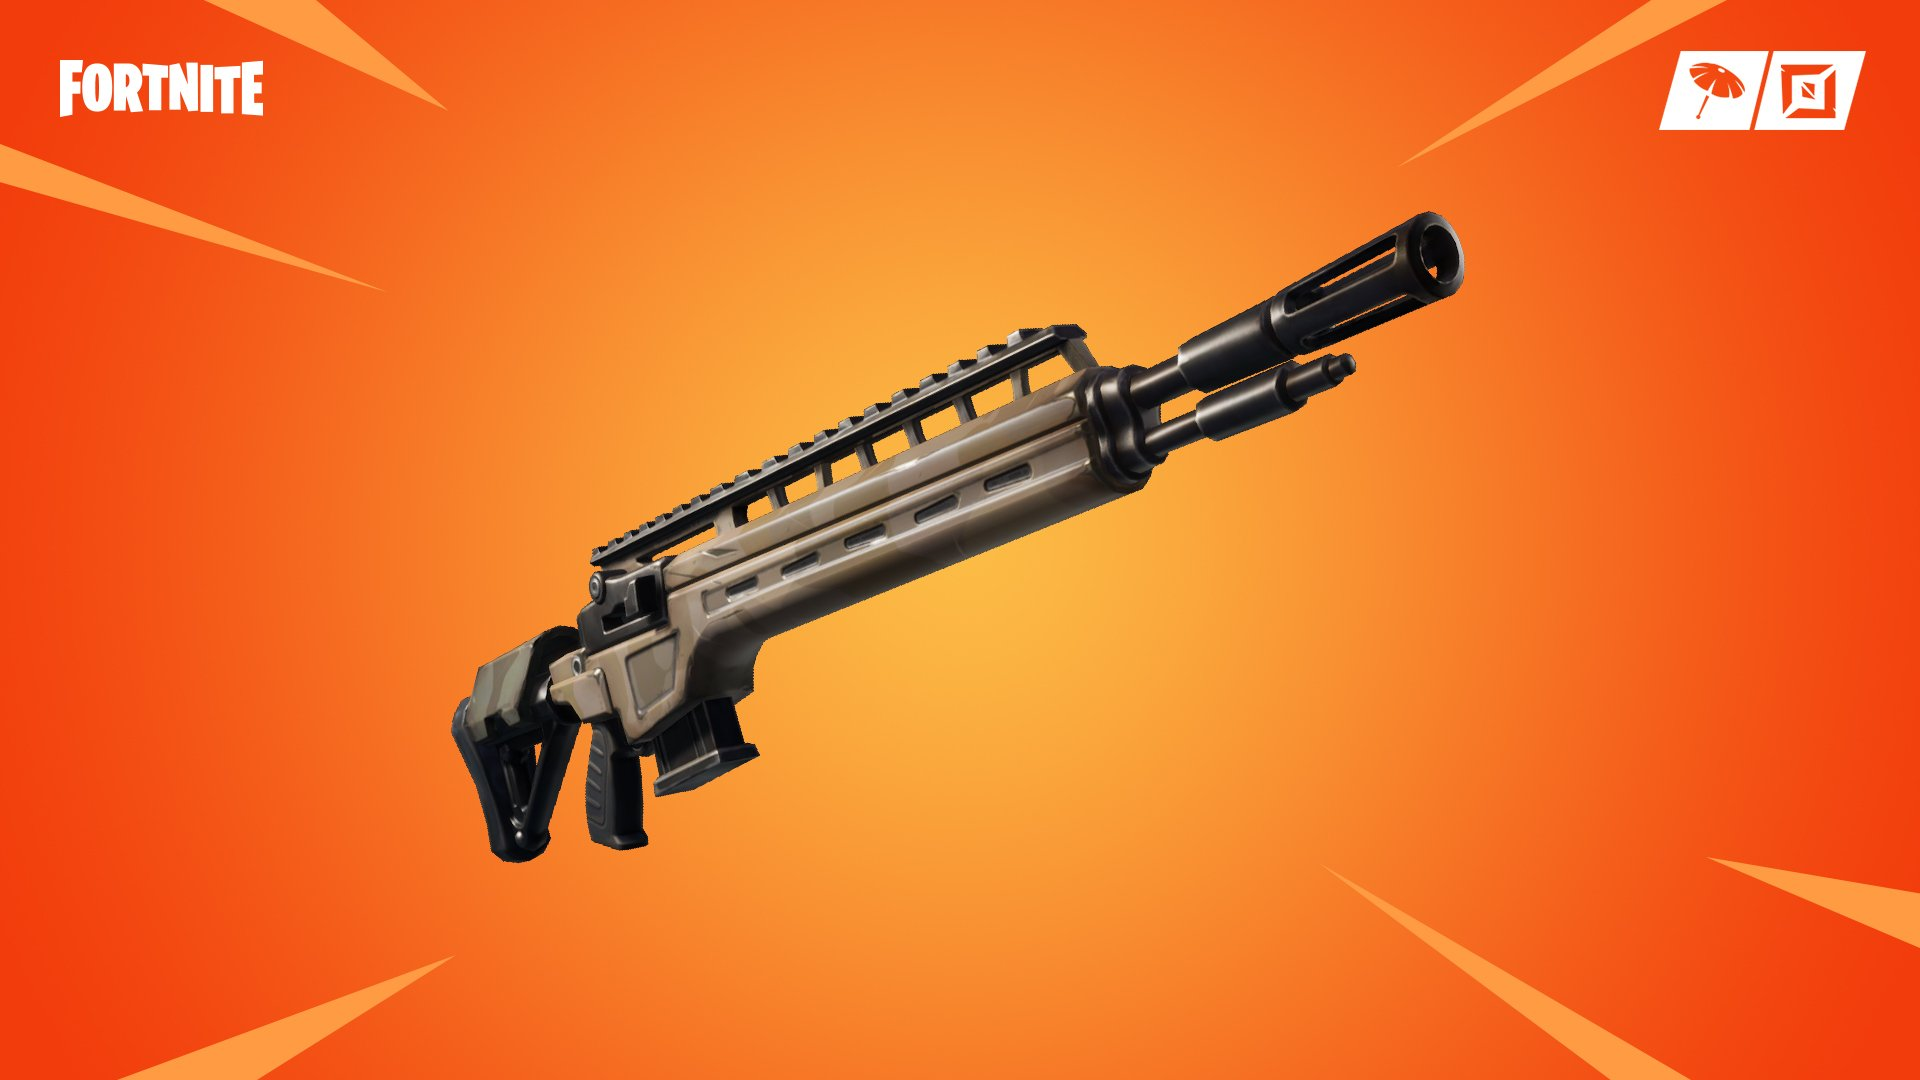 Fortnite patch notes 8.40